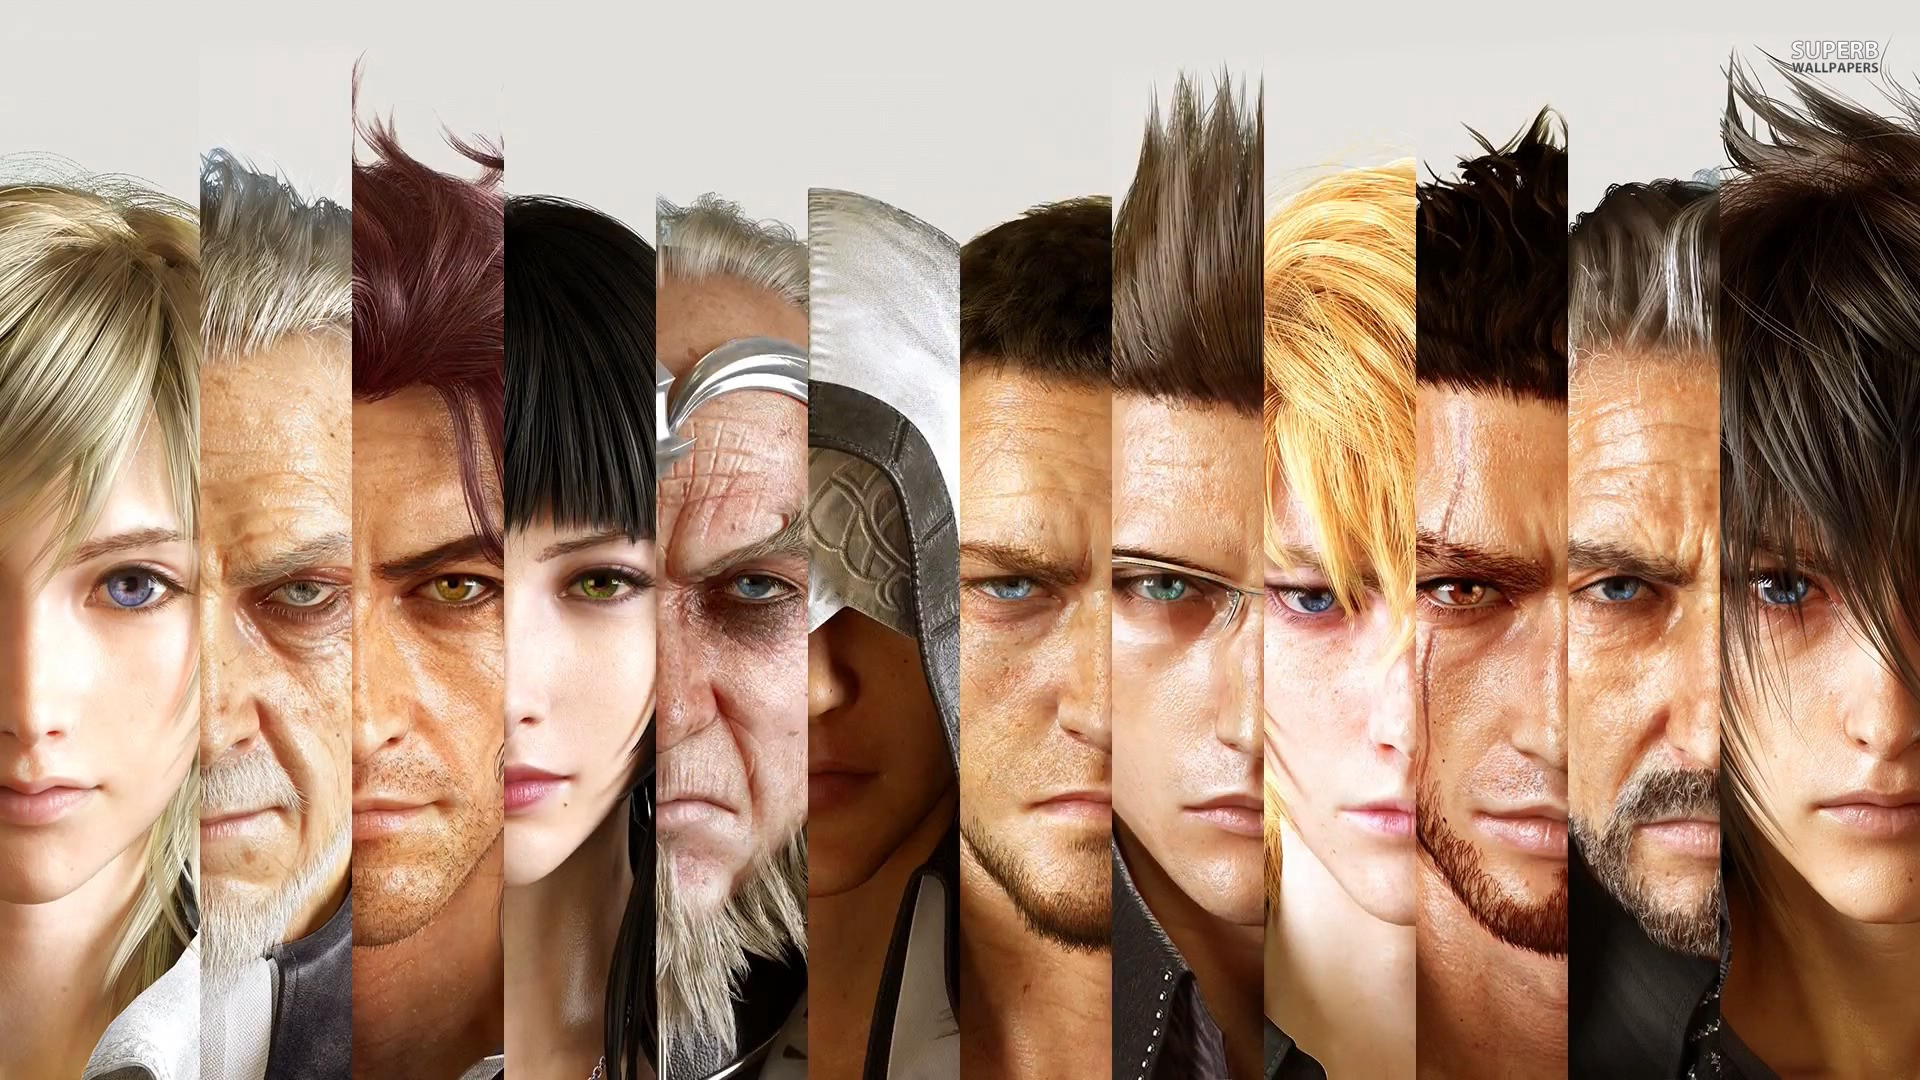 Credit Wallalphacoders By Sub Categoryphpid210667name Final Fantasy XV Wallpapers